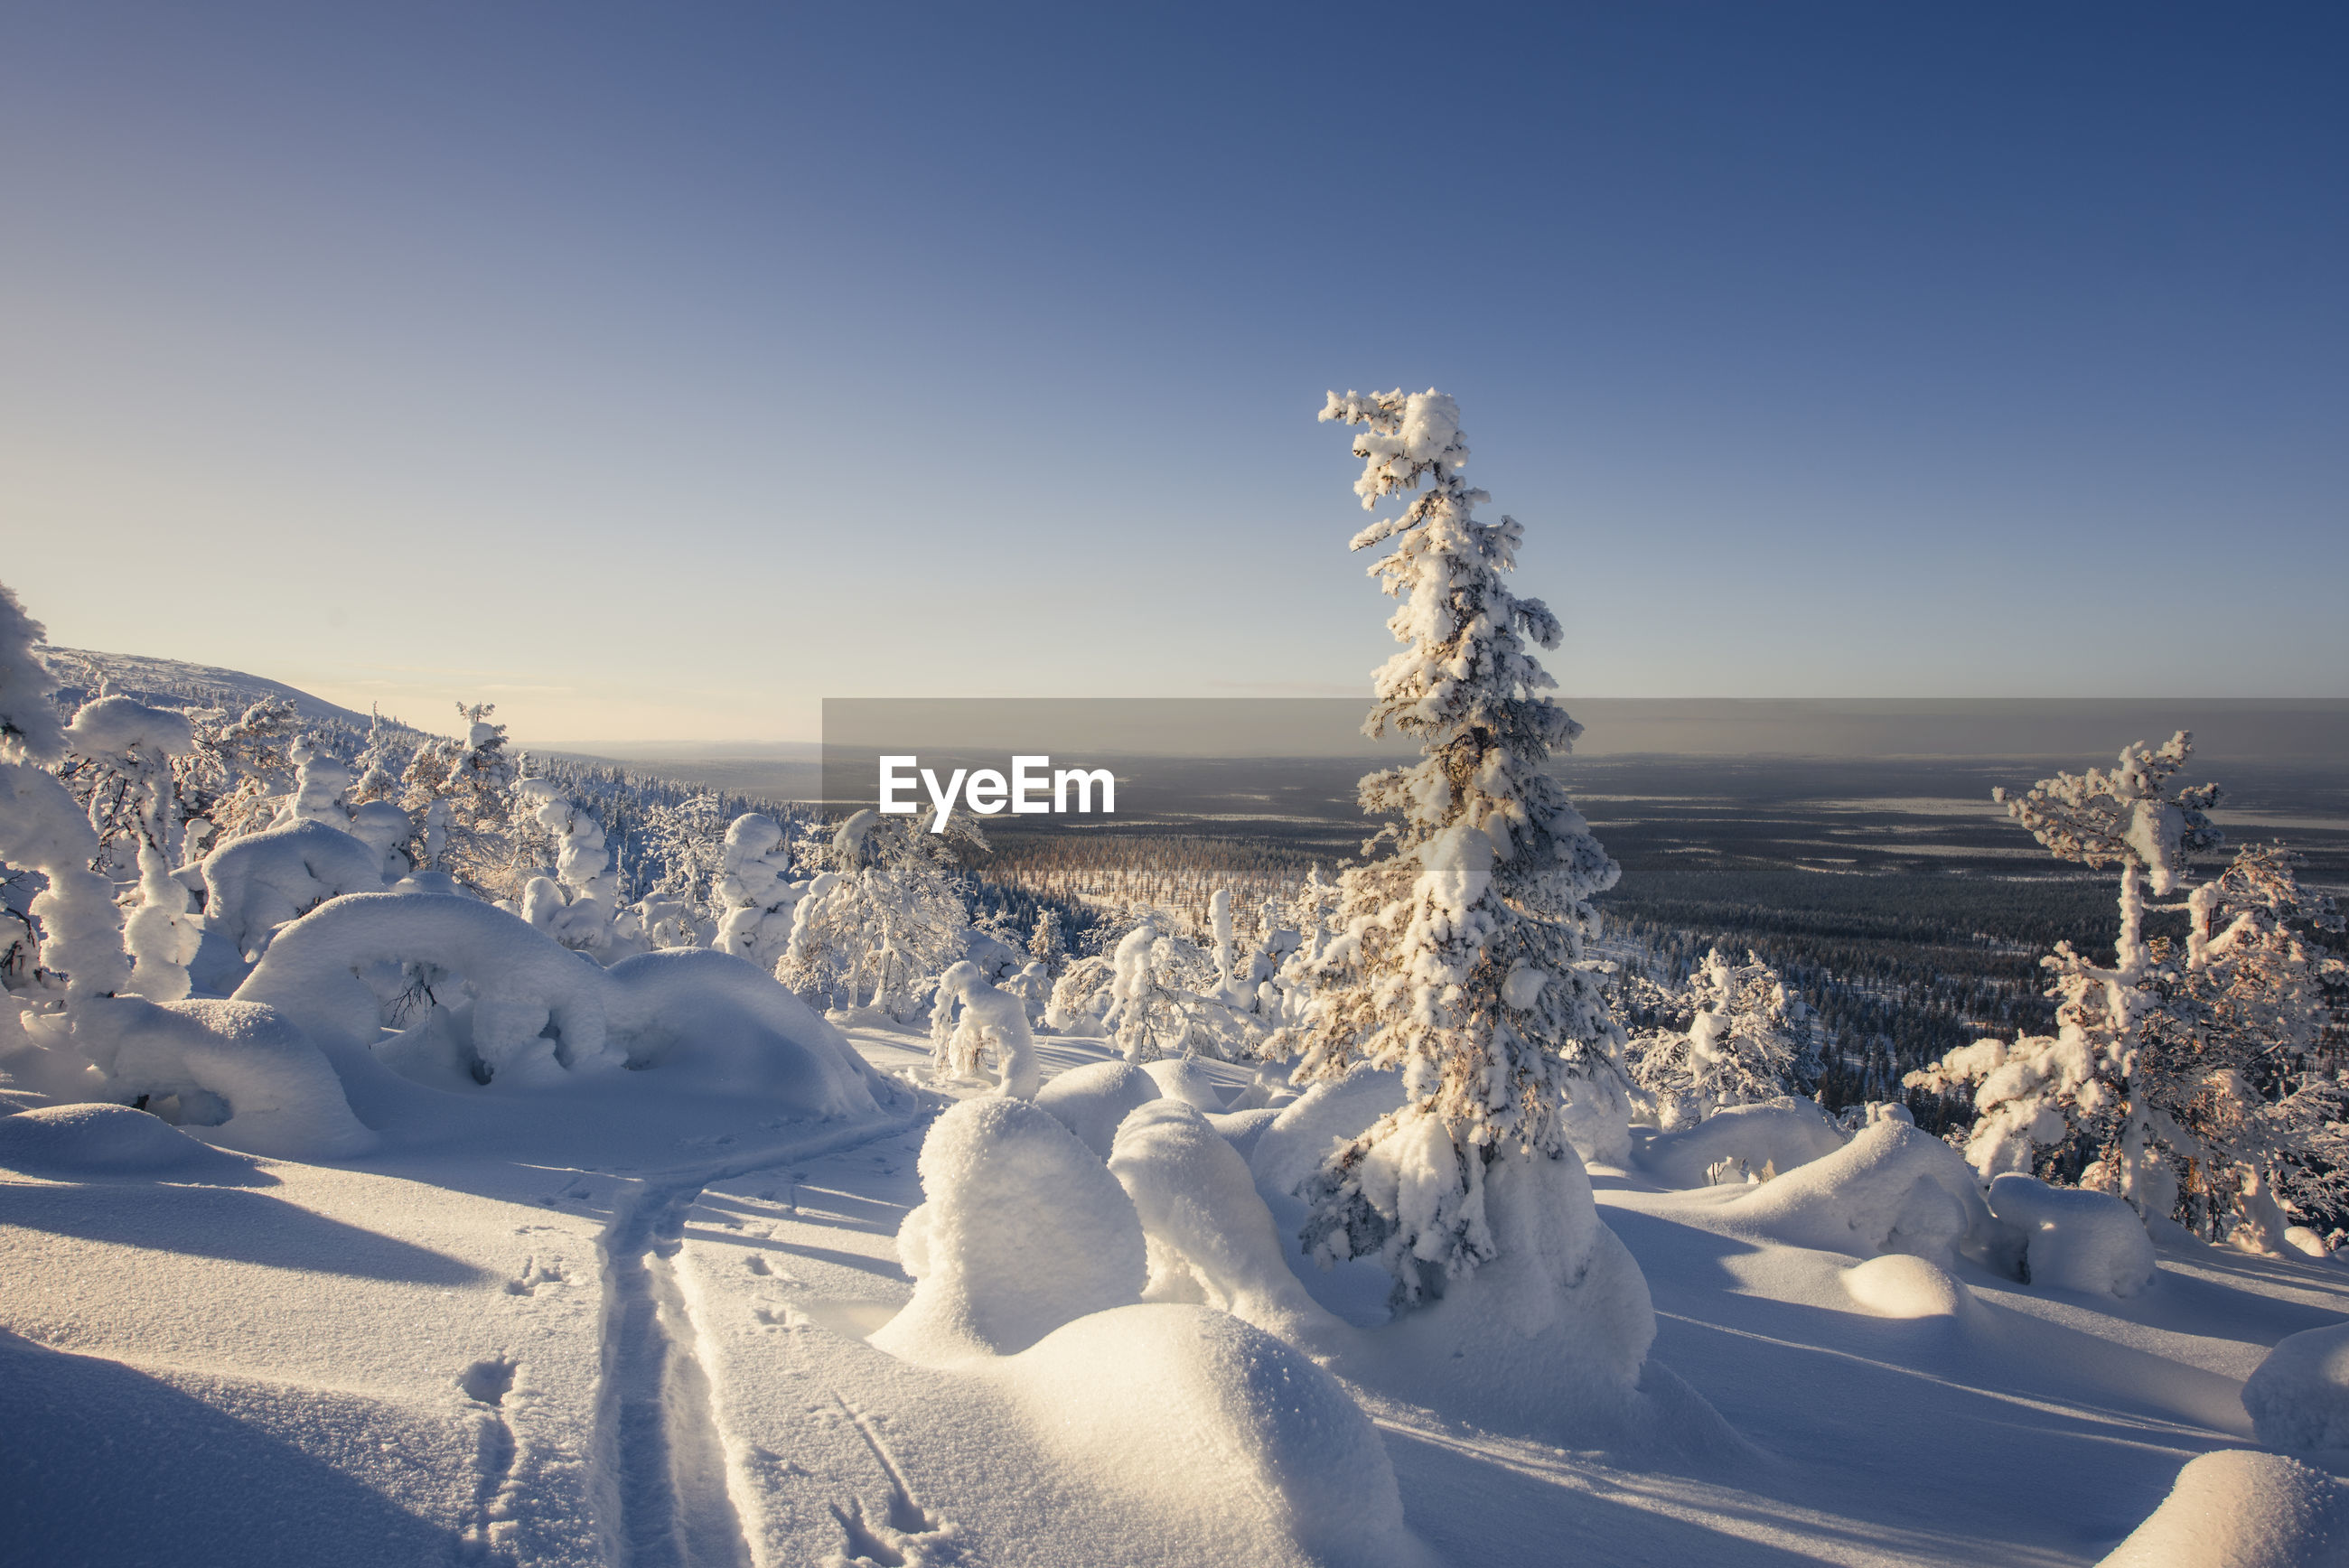 SNOW COVERED LANDSCAPE AGAINST CLEAR SKY DURING WINTER